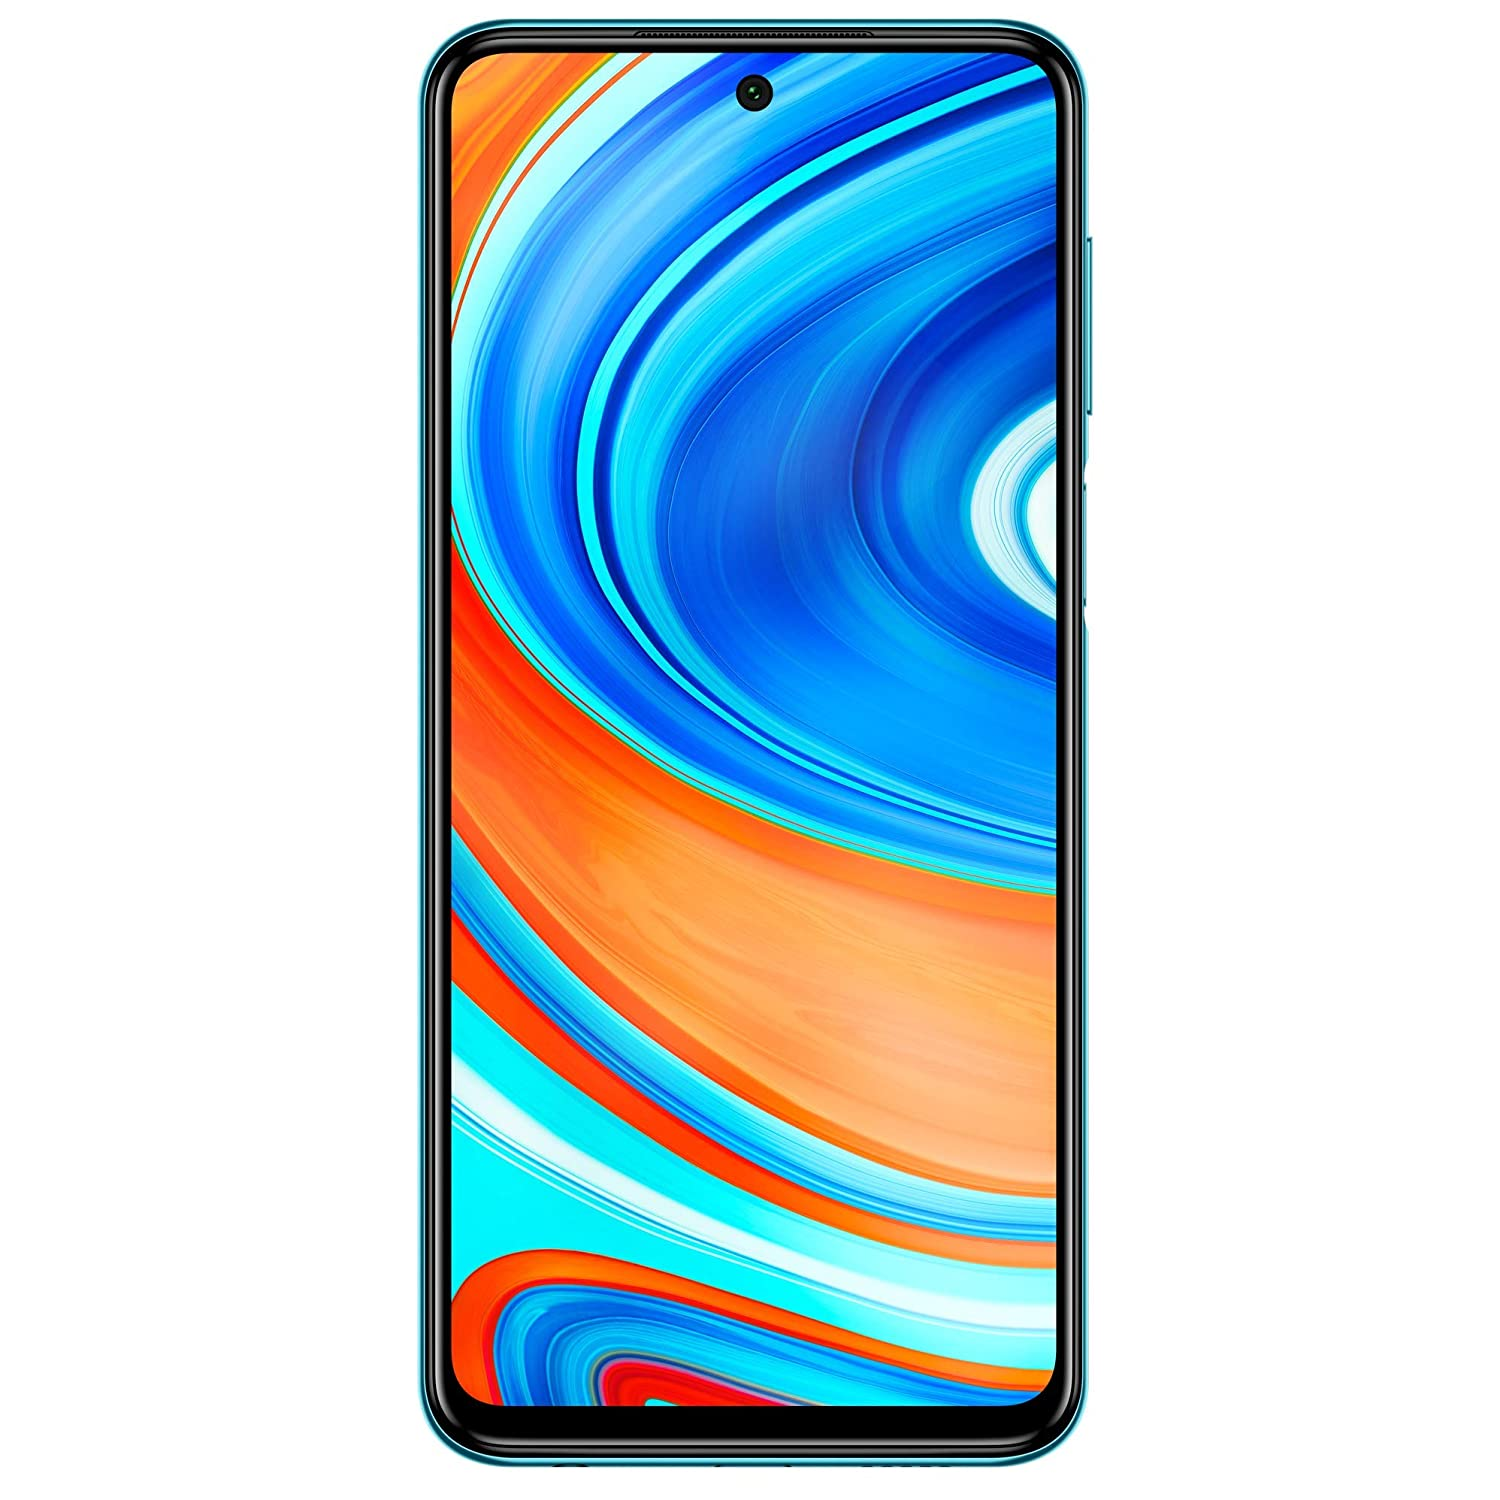 Redmi Note 9 Pro Max (Aurora Blue, 6GB RAM, 64GB Storage)- 64MP Quad Camera & Latest 8nm Snapdragon 720G & Alexa Hands-Free | 12 Months No Cost EMI & INR 1000 Off on Exchange